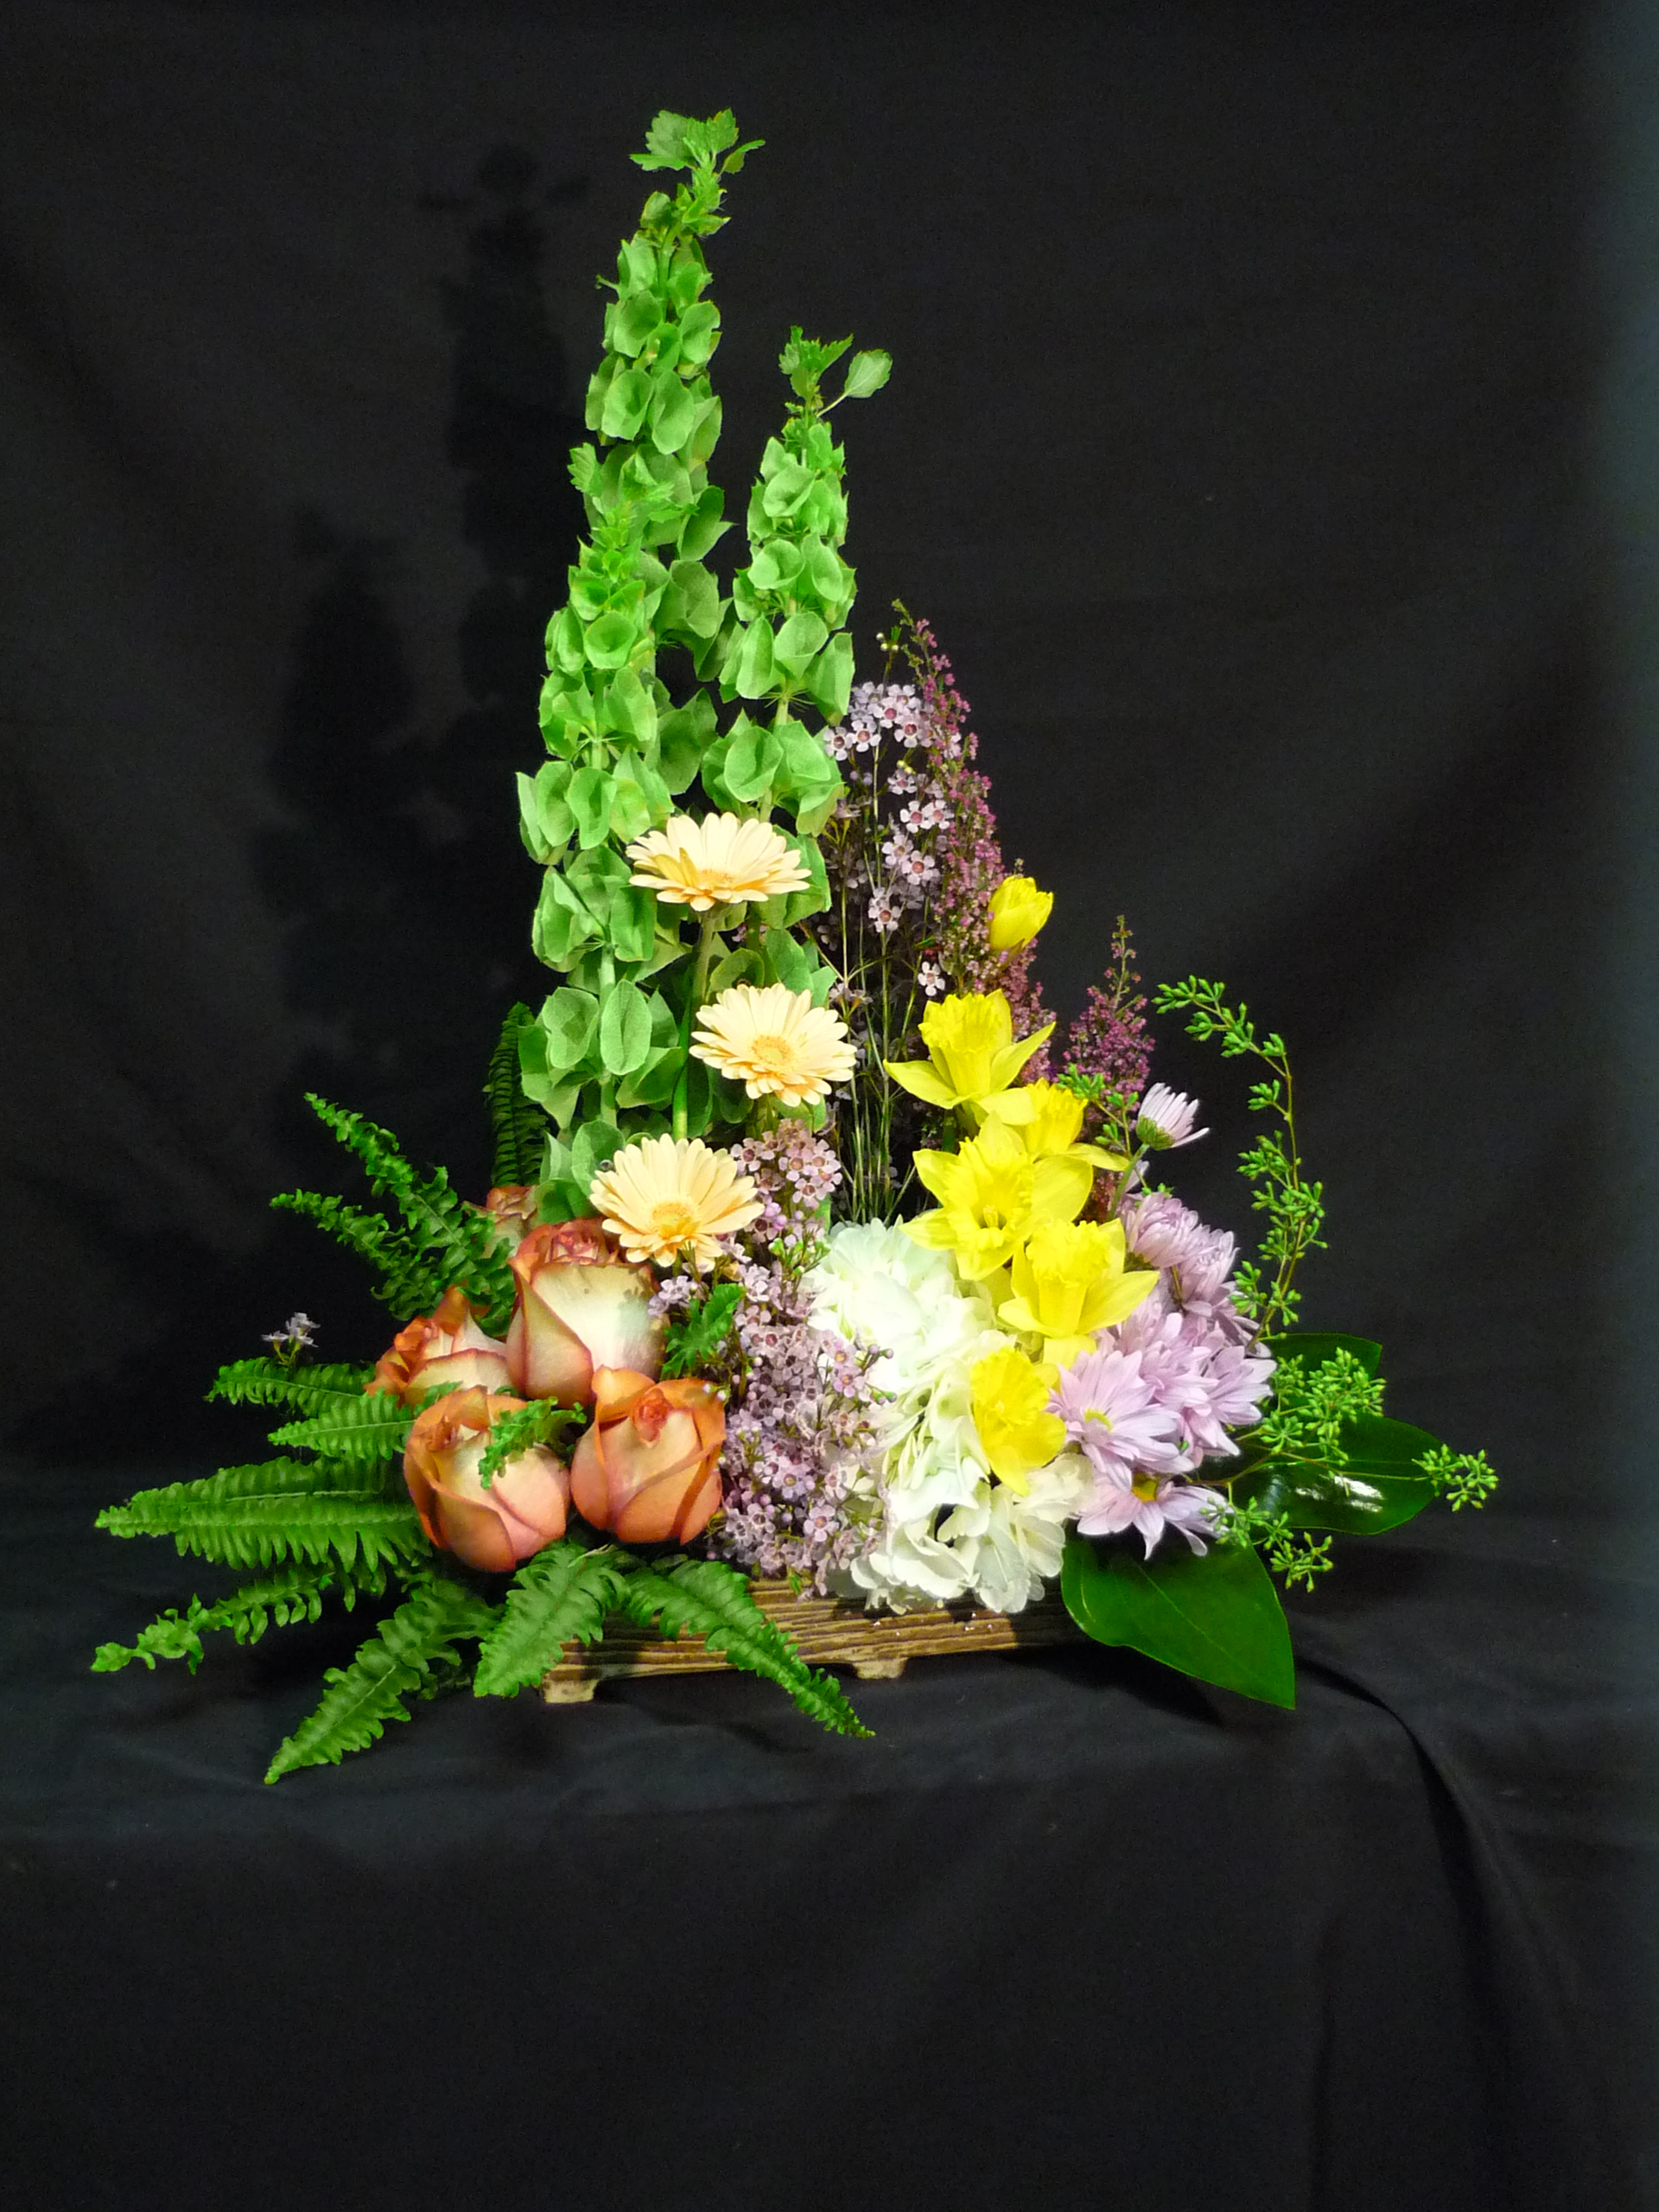 Gallery the flowers form a garden setting against a tall green back drop of bells of ireland gerberas daffodils hydrangeas roses and wax izmirmasajfo